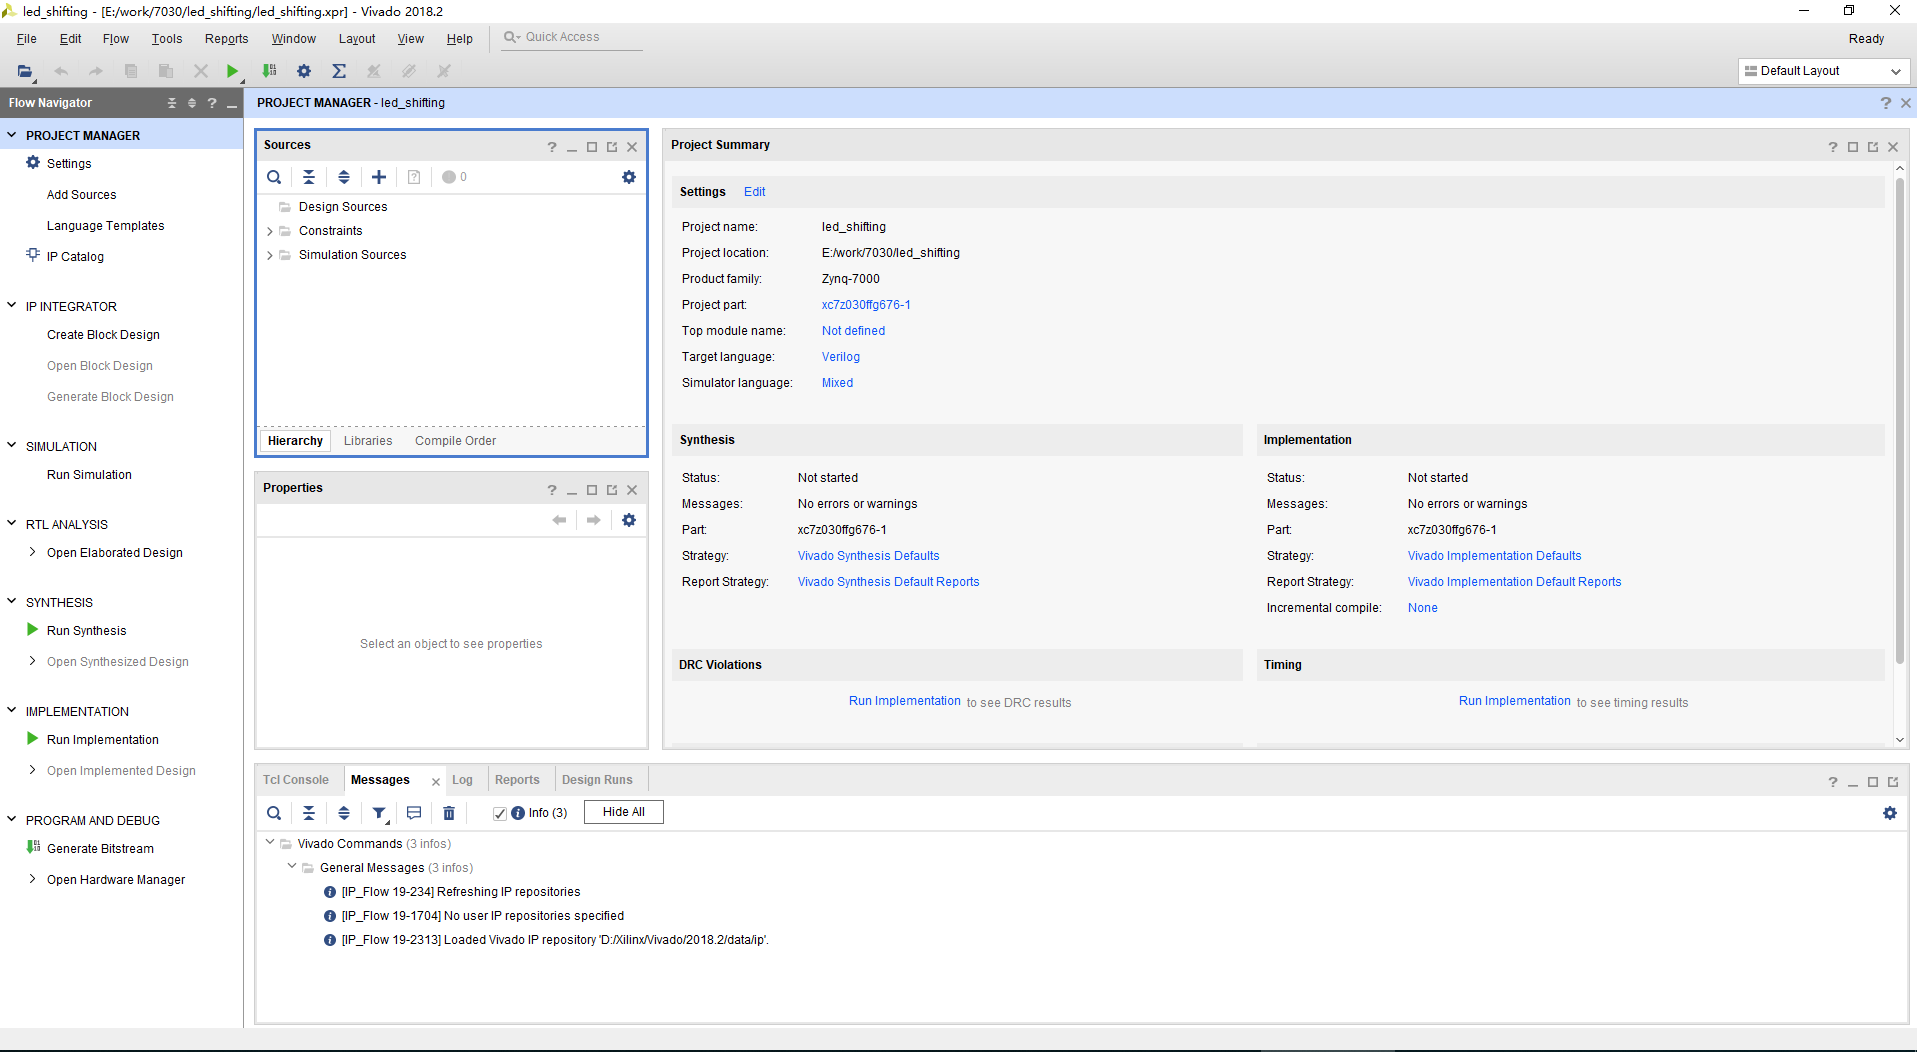 PROJECT MANAGER interface